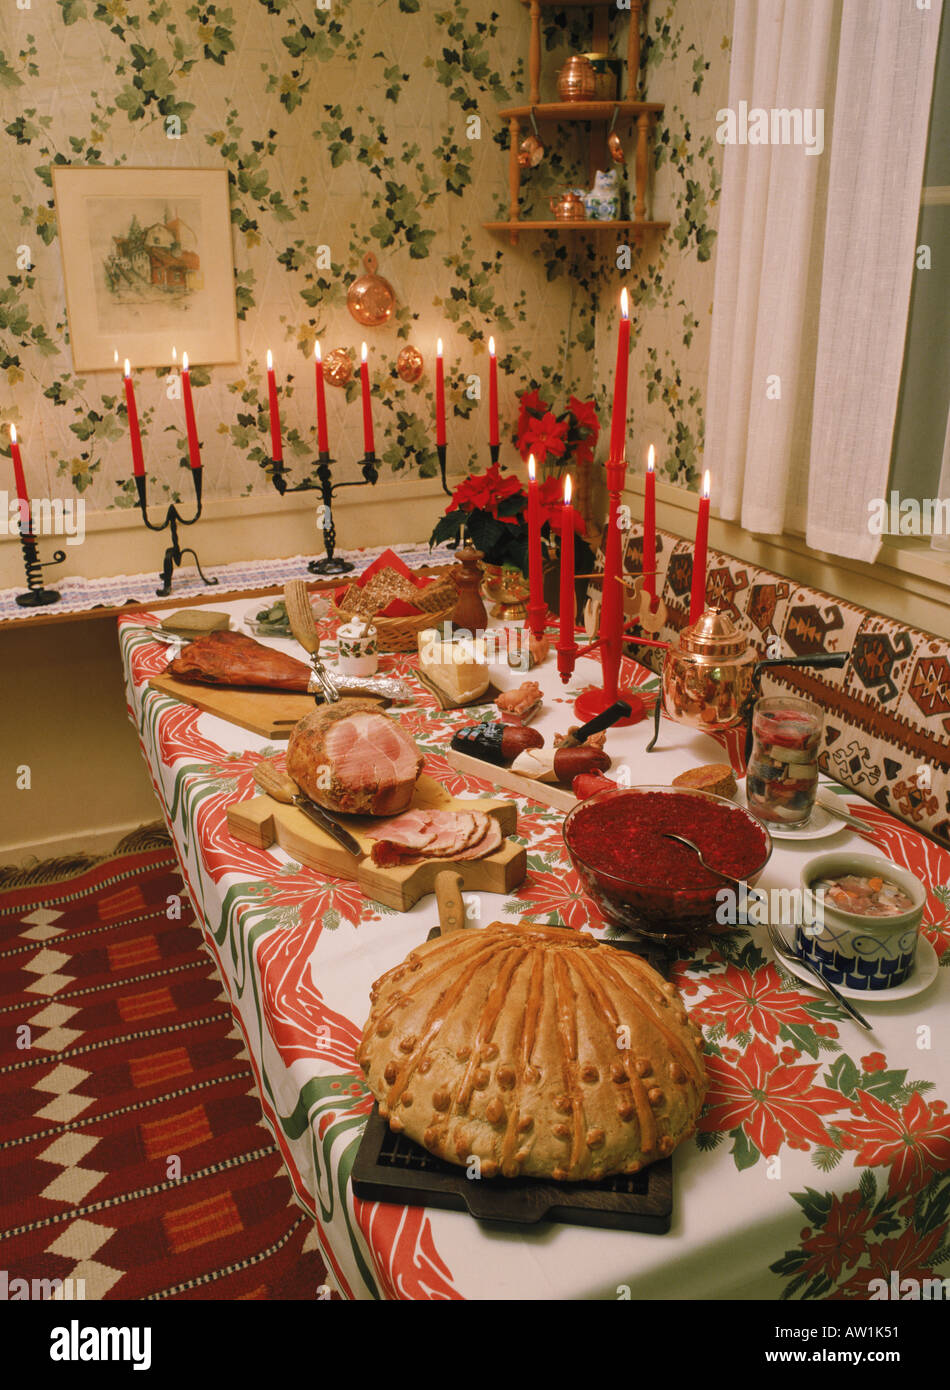 Swedish Christmas Bread.Swedish Christmas Table Or Julbord With Cheese Baked Bread Beer